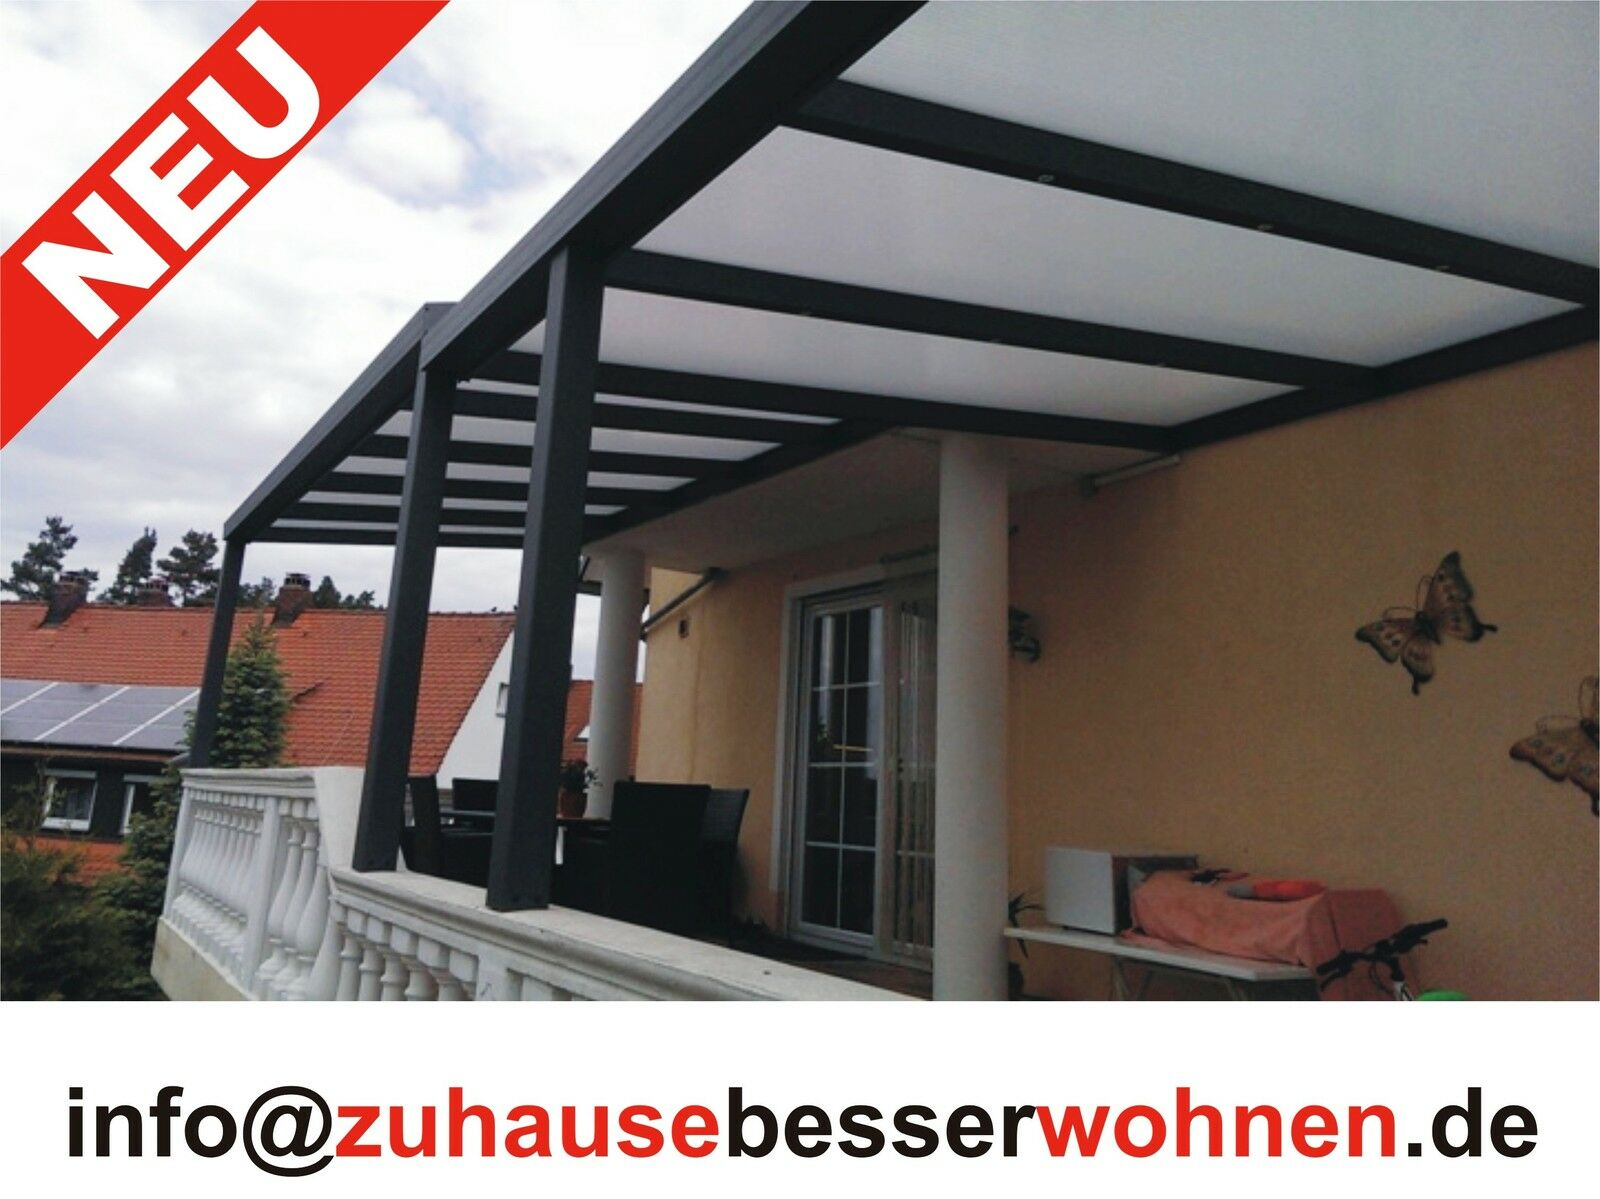 terrassen berdachung carport berdachung aluminium terrassendach vsg glas 3x3m. Black Bedroom Furniture Sets. Home Design Ideas